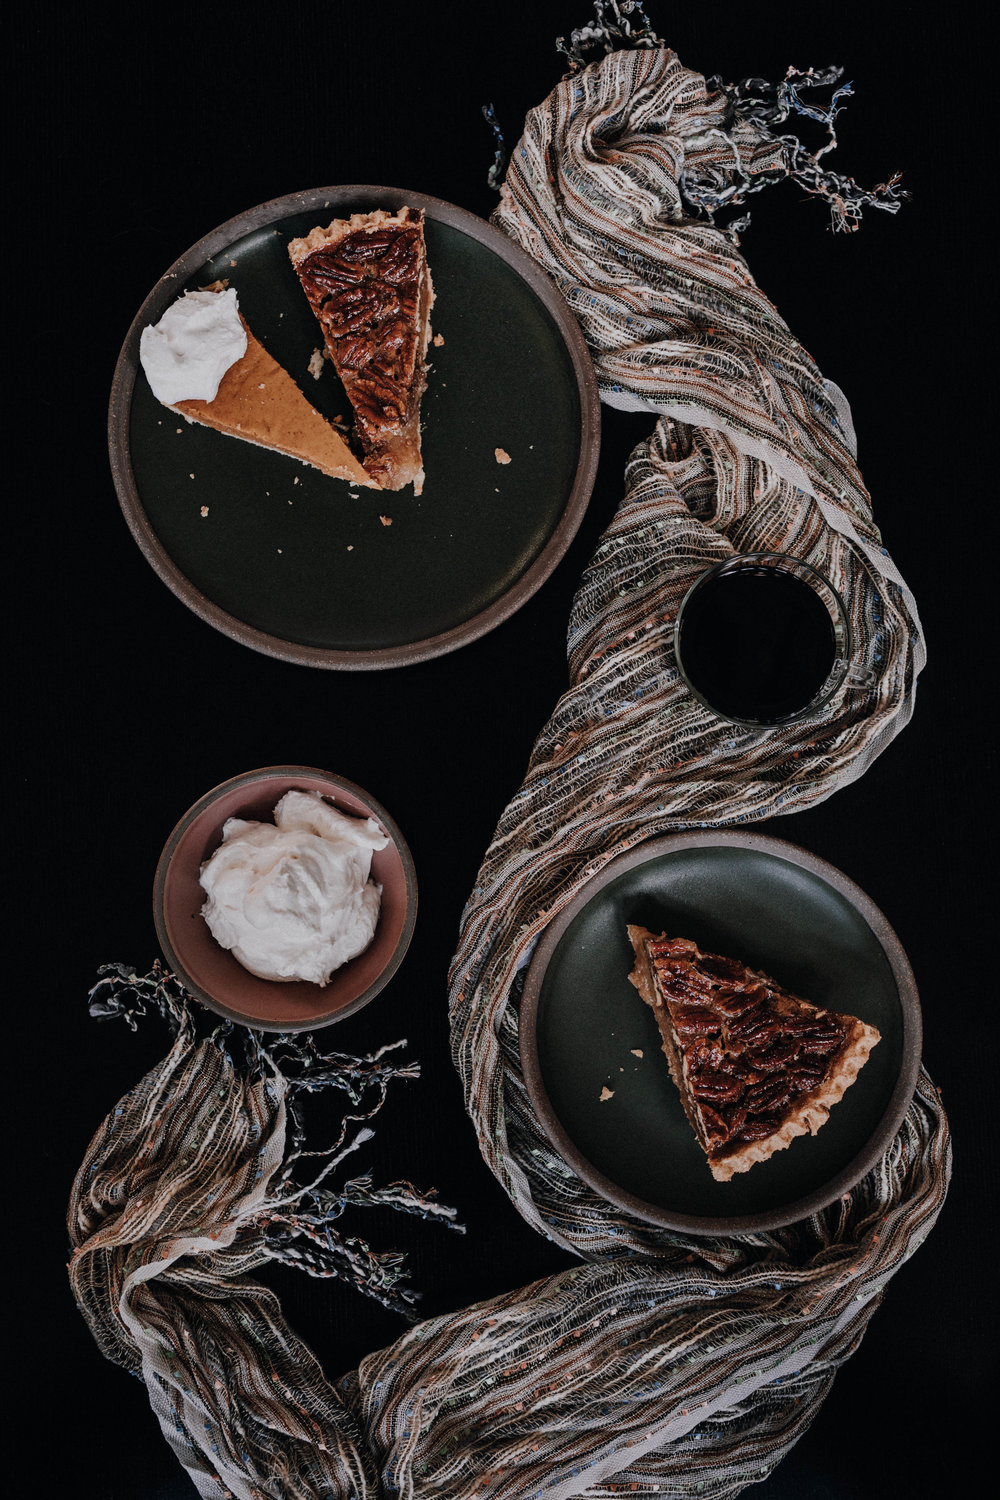 Sheena_Shahangian_Photography_Food_&_Lifestyle_Pumpkin_and_Pecan_Pies-4.jpg